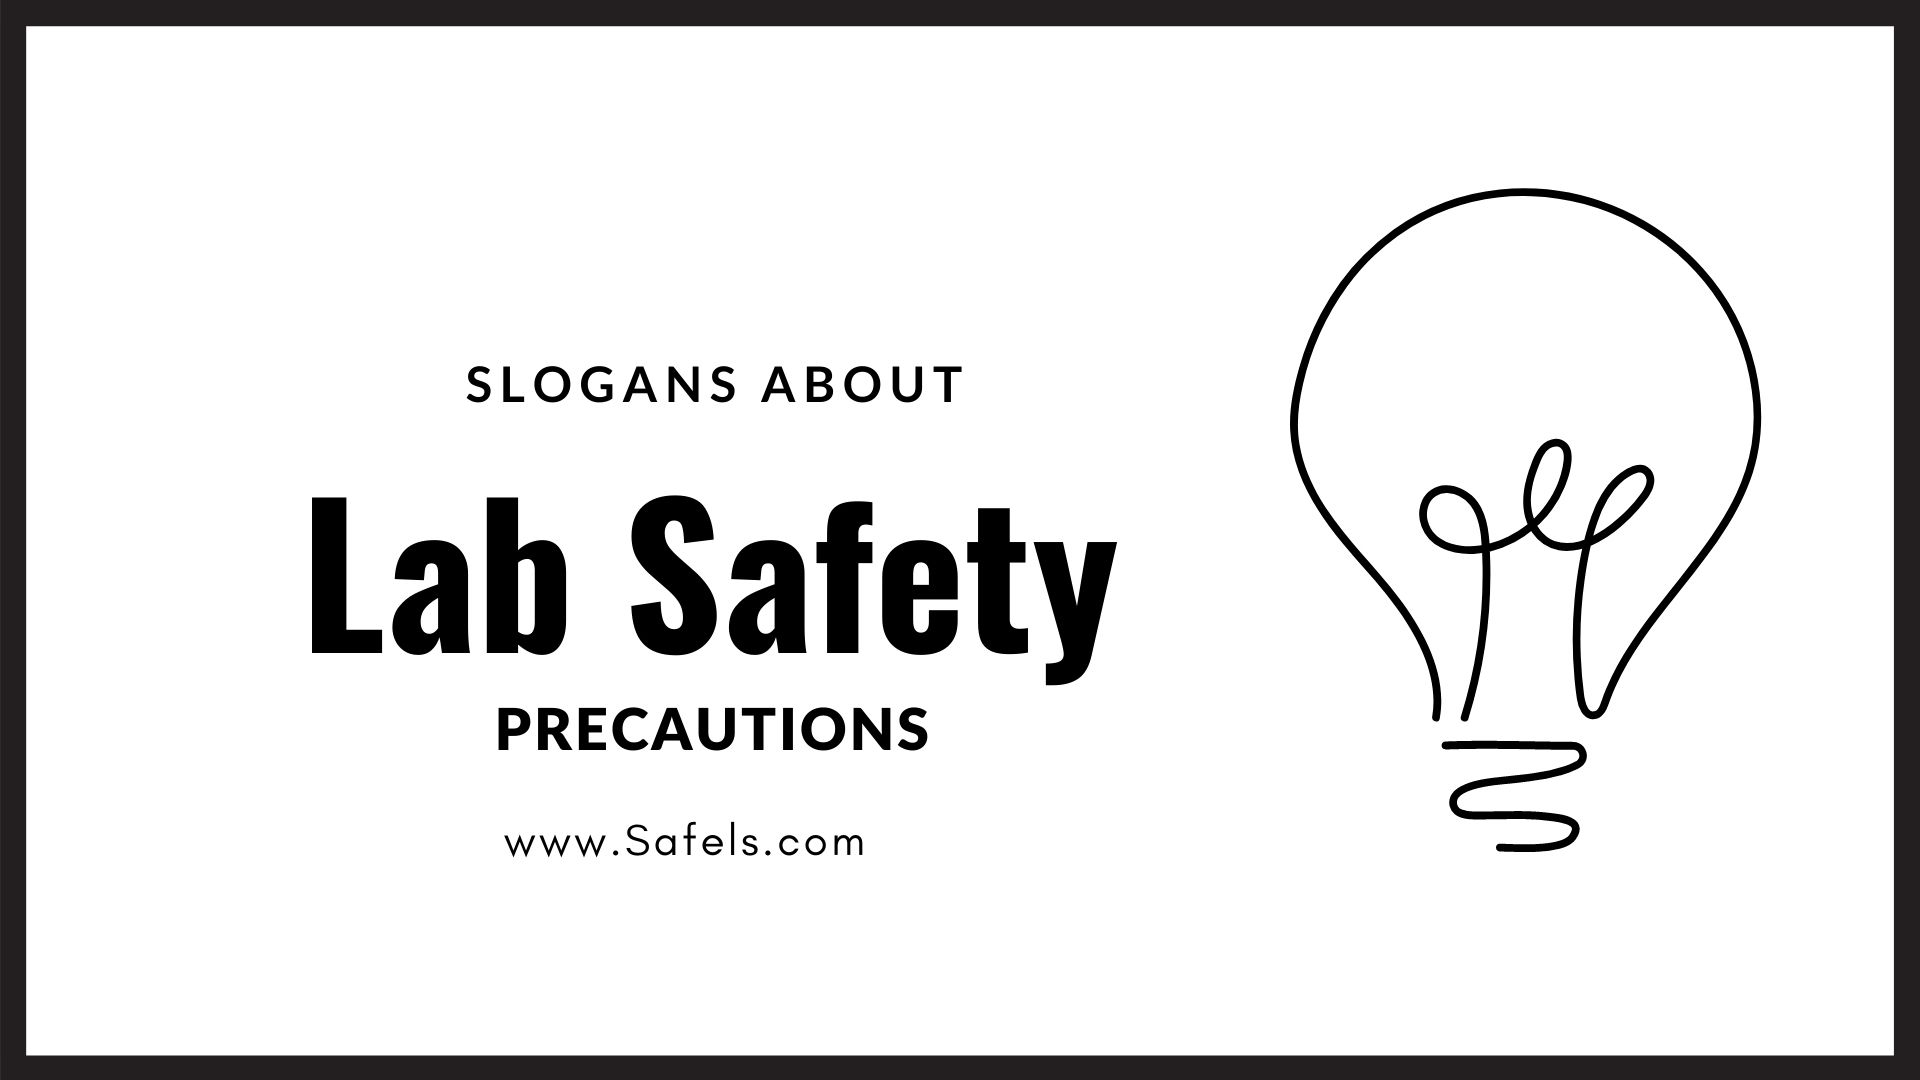 slogan about safety precautions in the laboratory